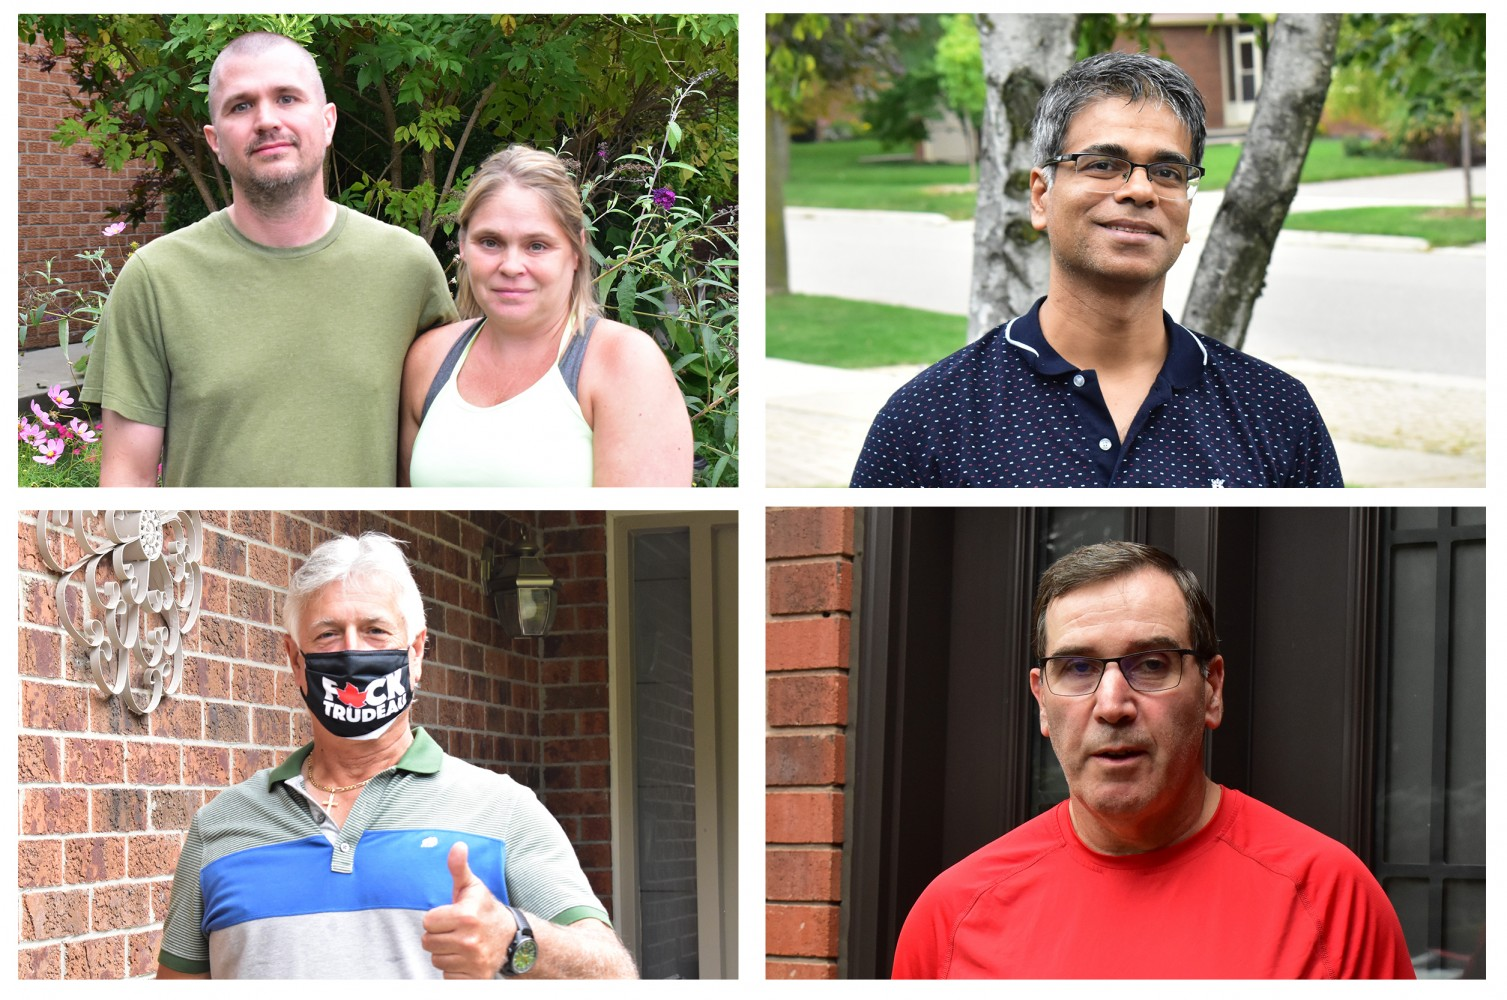 Residents visited in one Mississauga neighbourhood say little is known about local candidates who are MIA